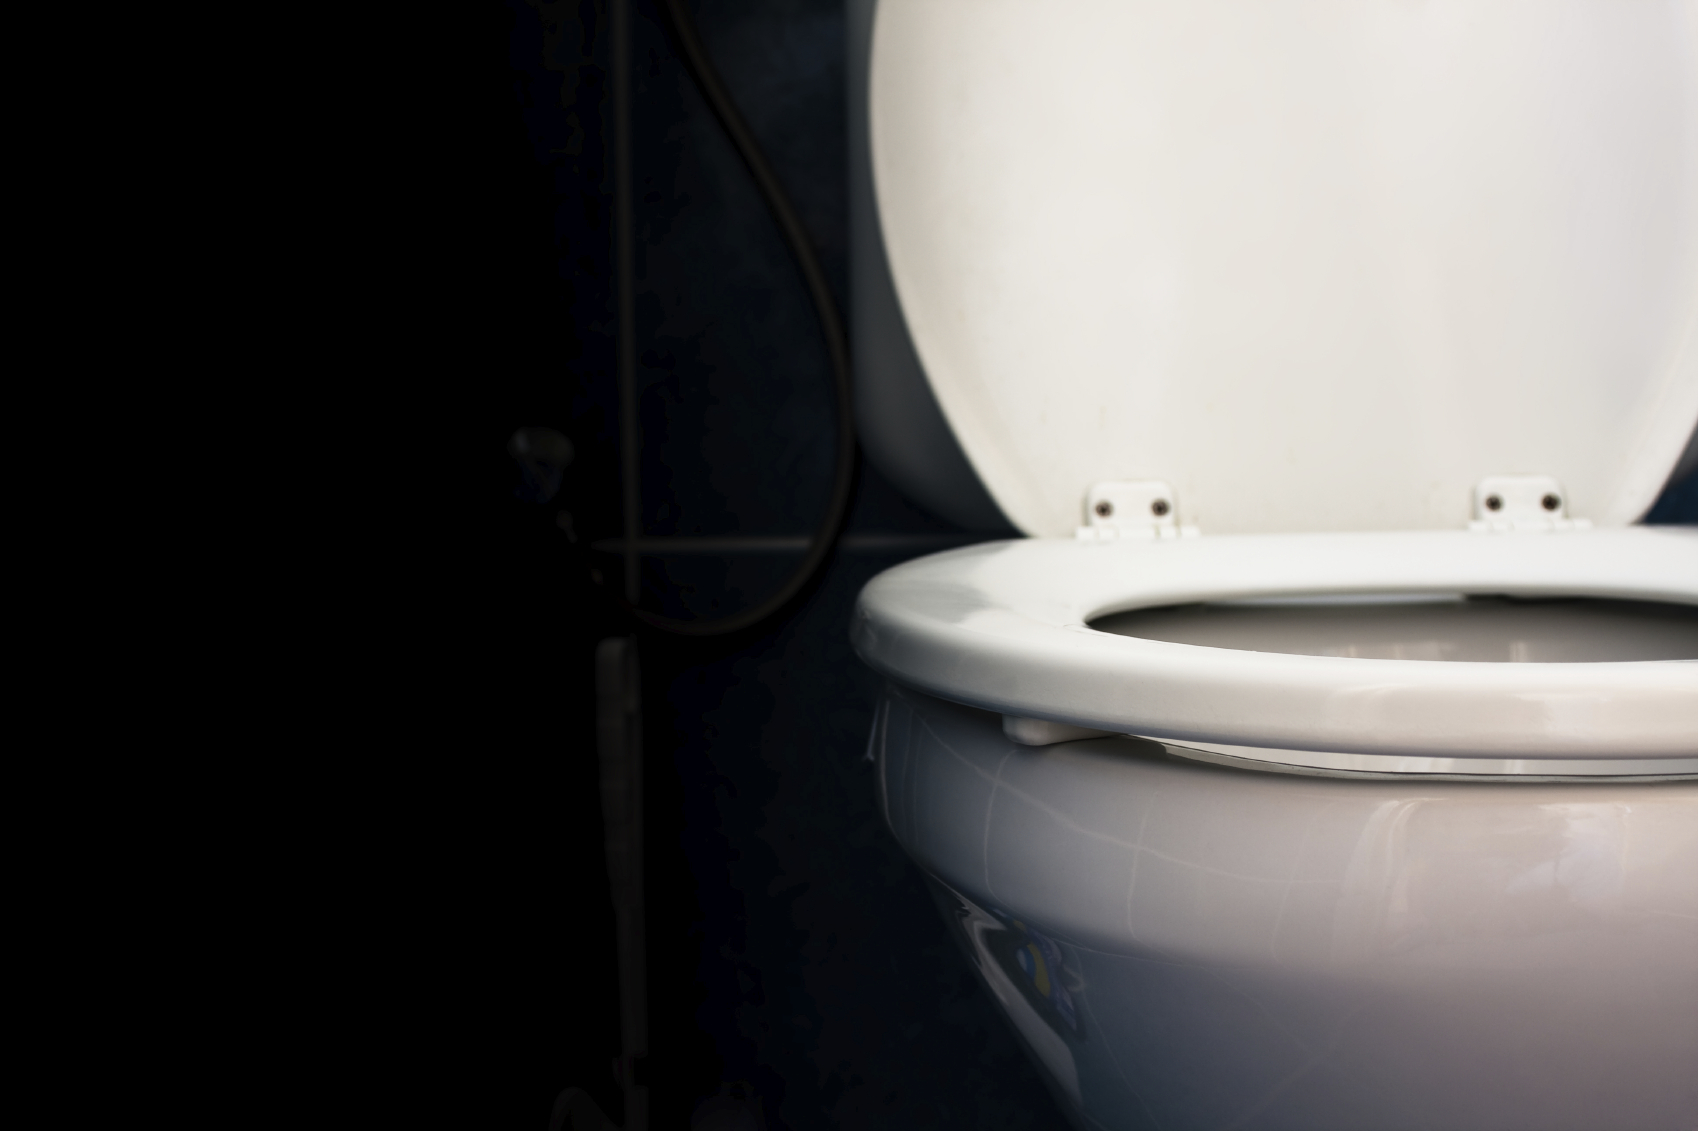 How to Unclog a Toilet with Mathew's Plumbing